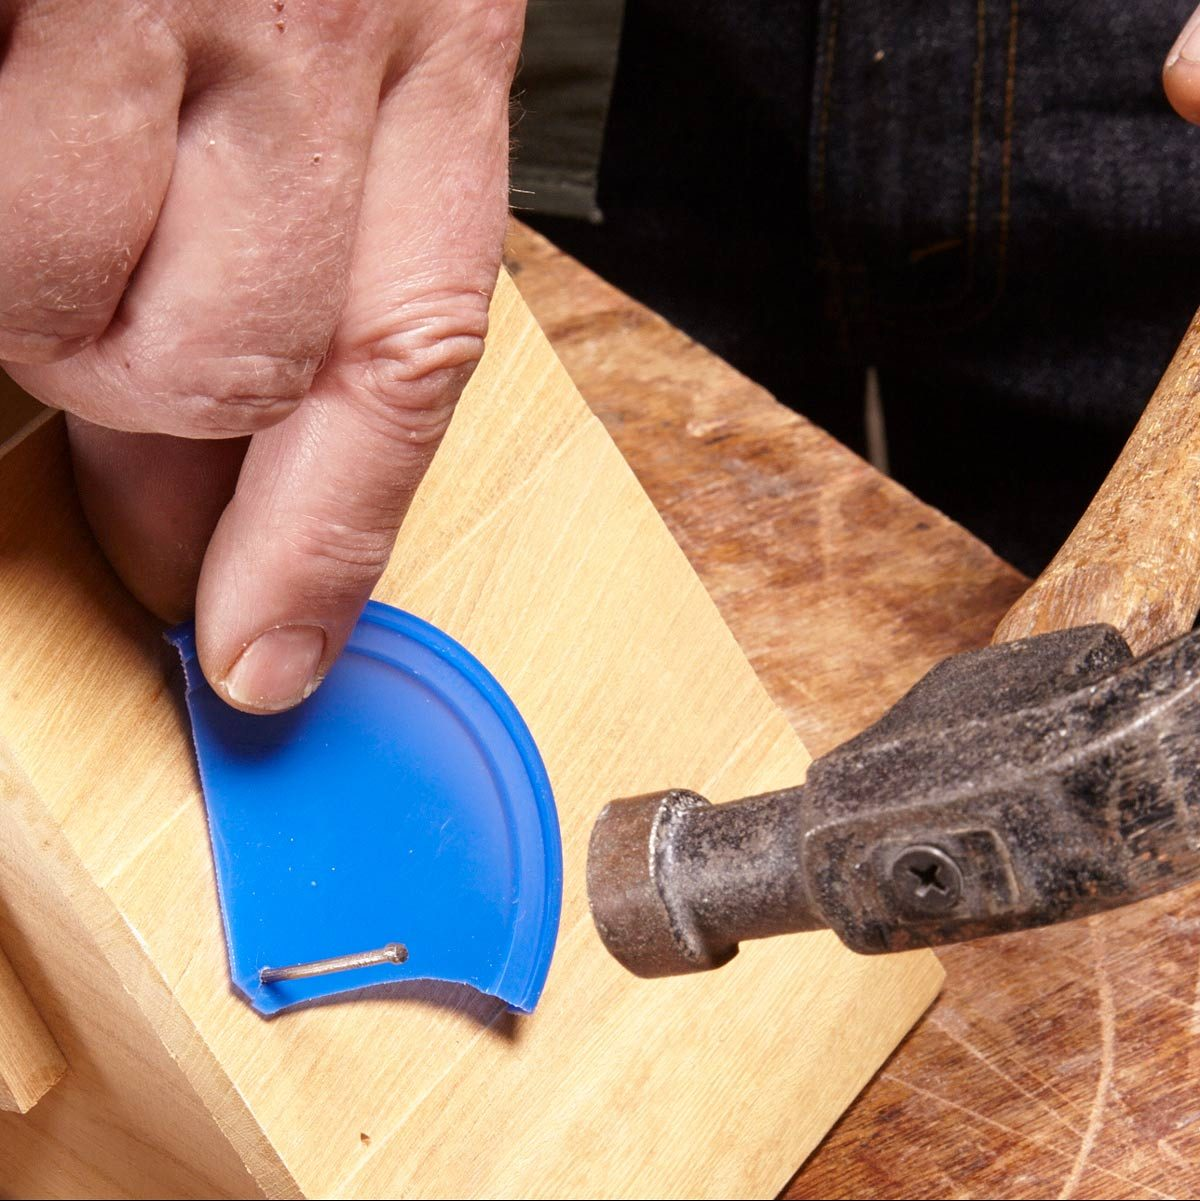 a nail holder that will save your fingers | family handyman